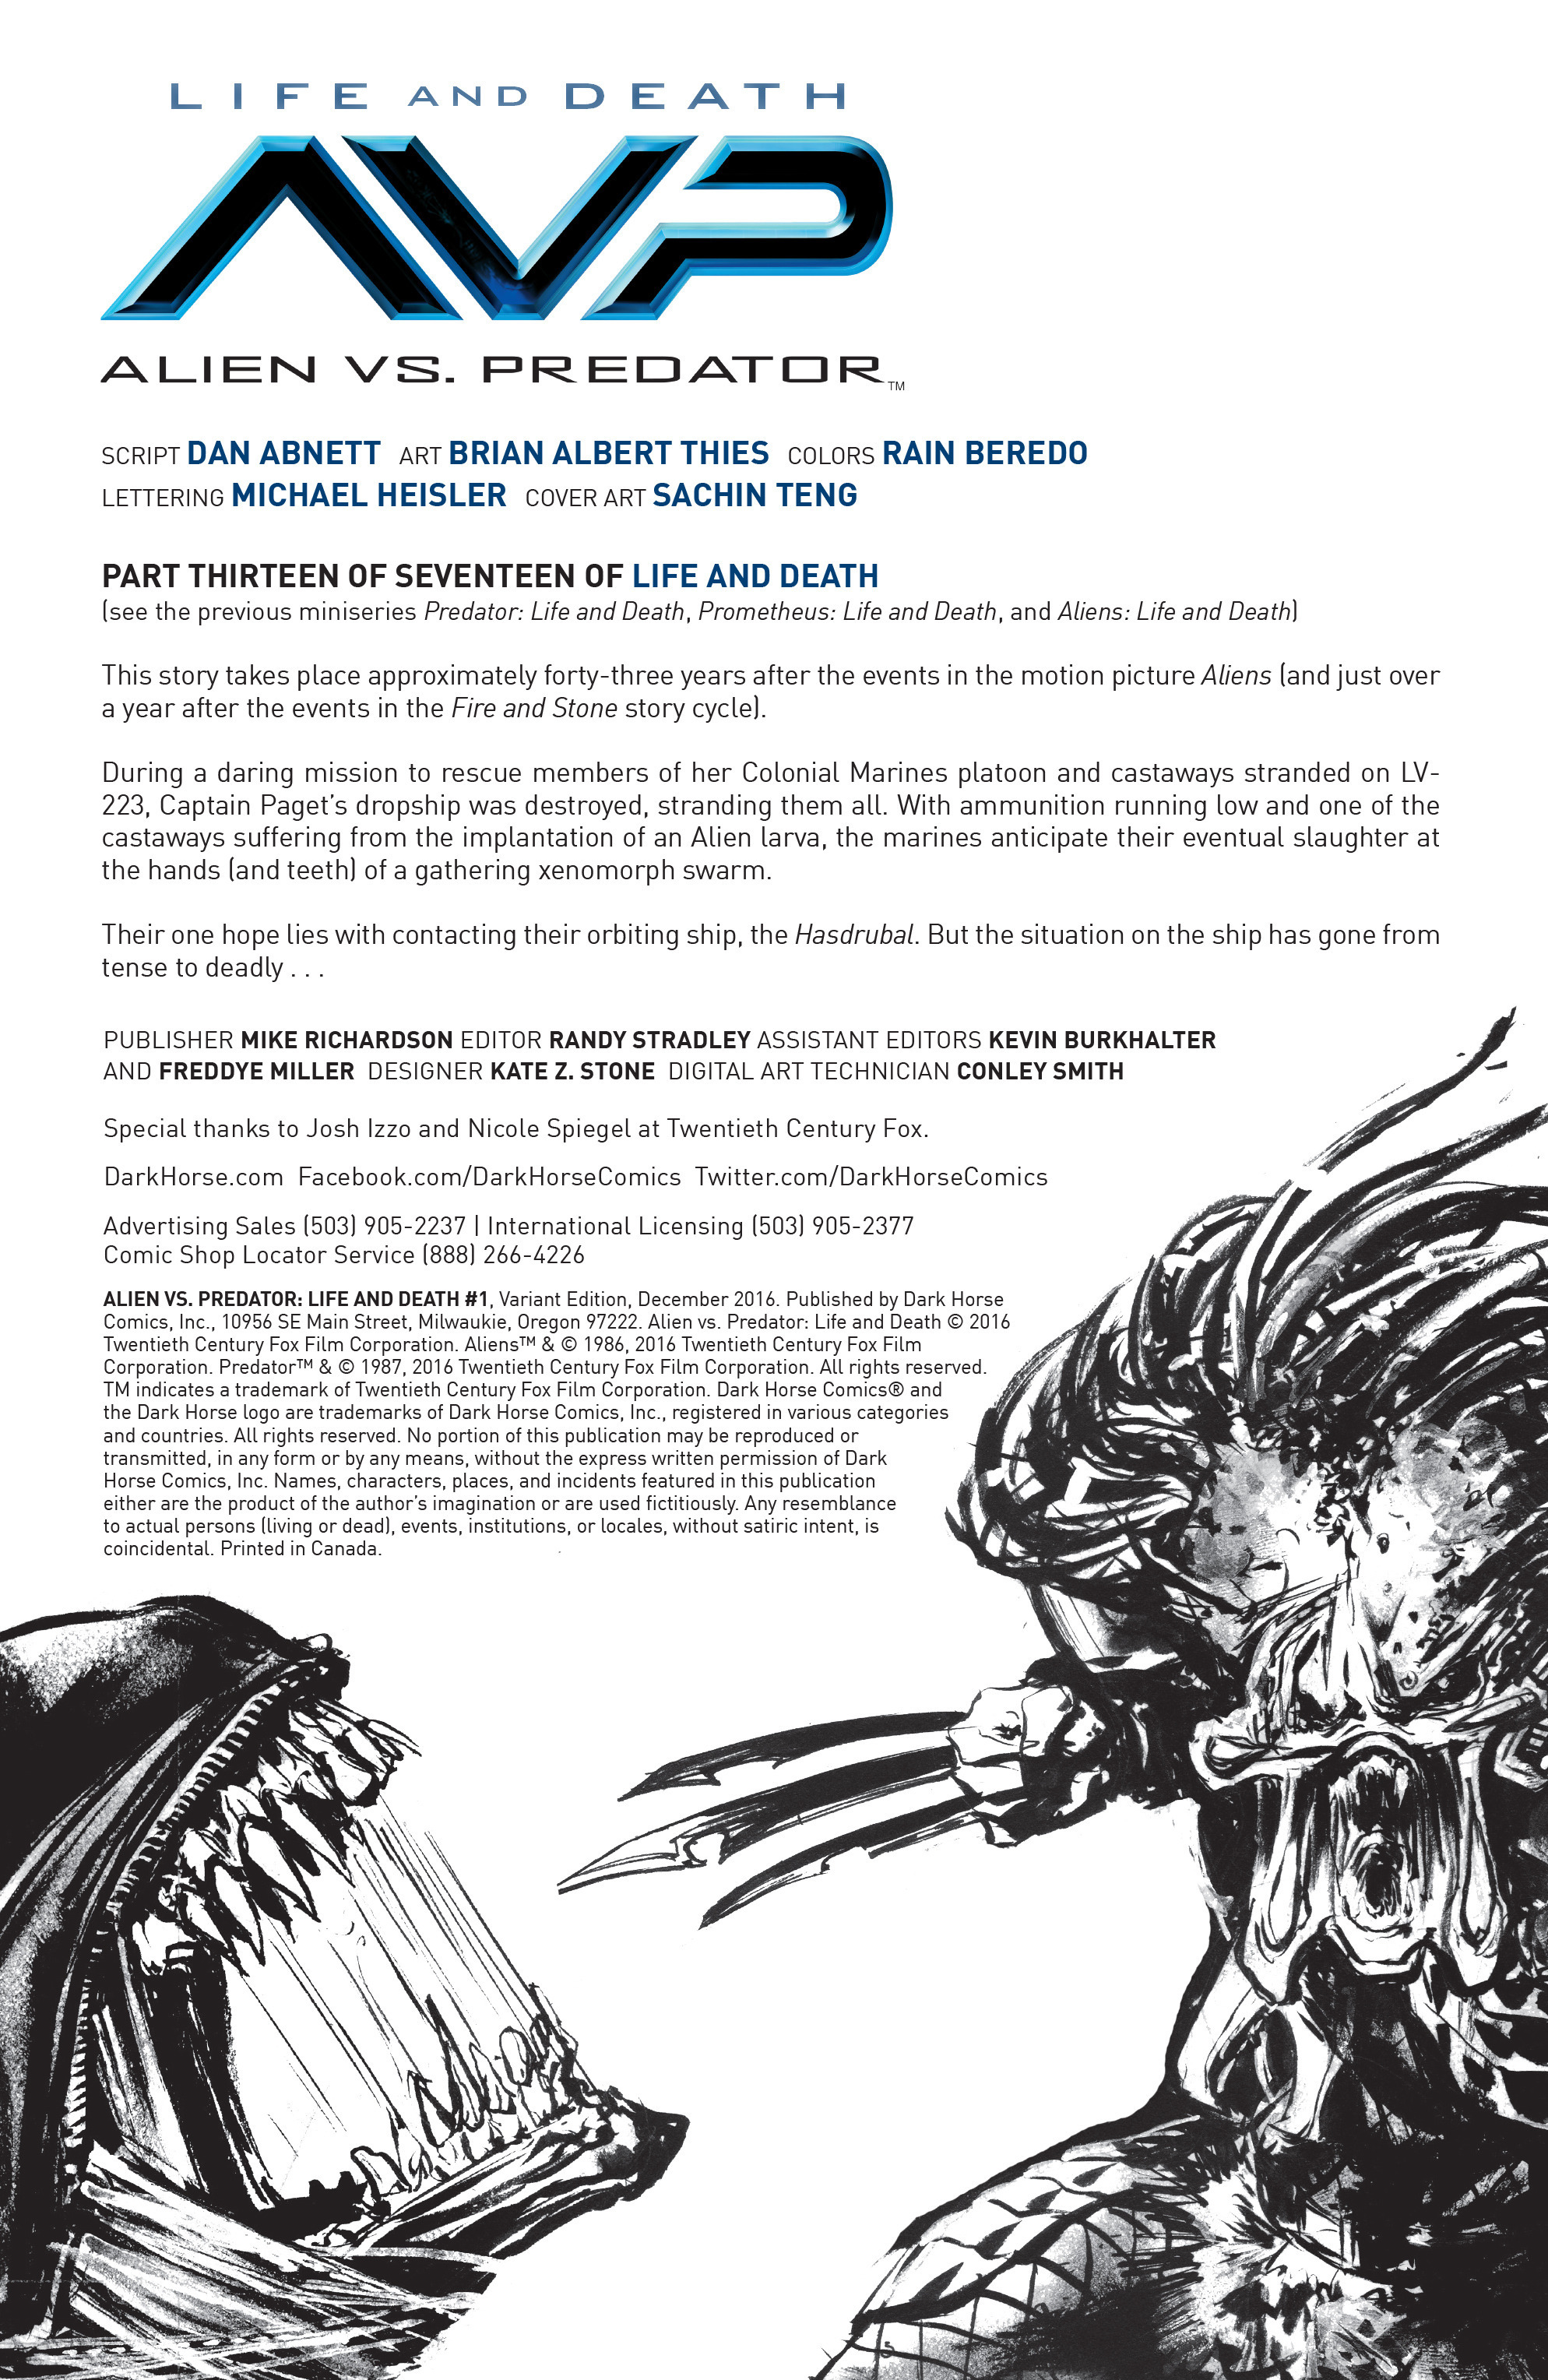 Read online Alien Vs. Predator: Life and Death comic -  Issue #1 - 5